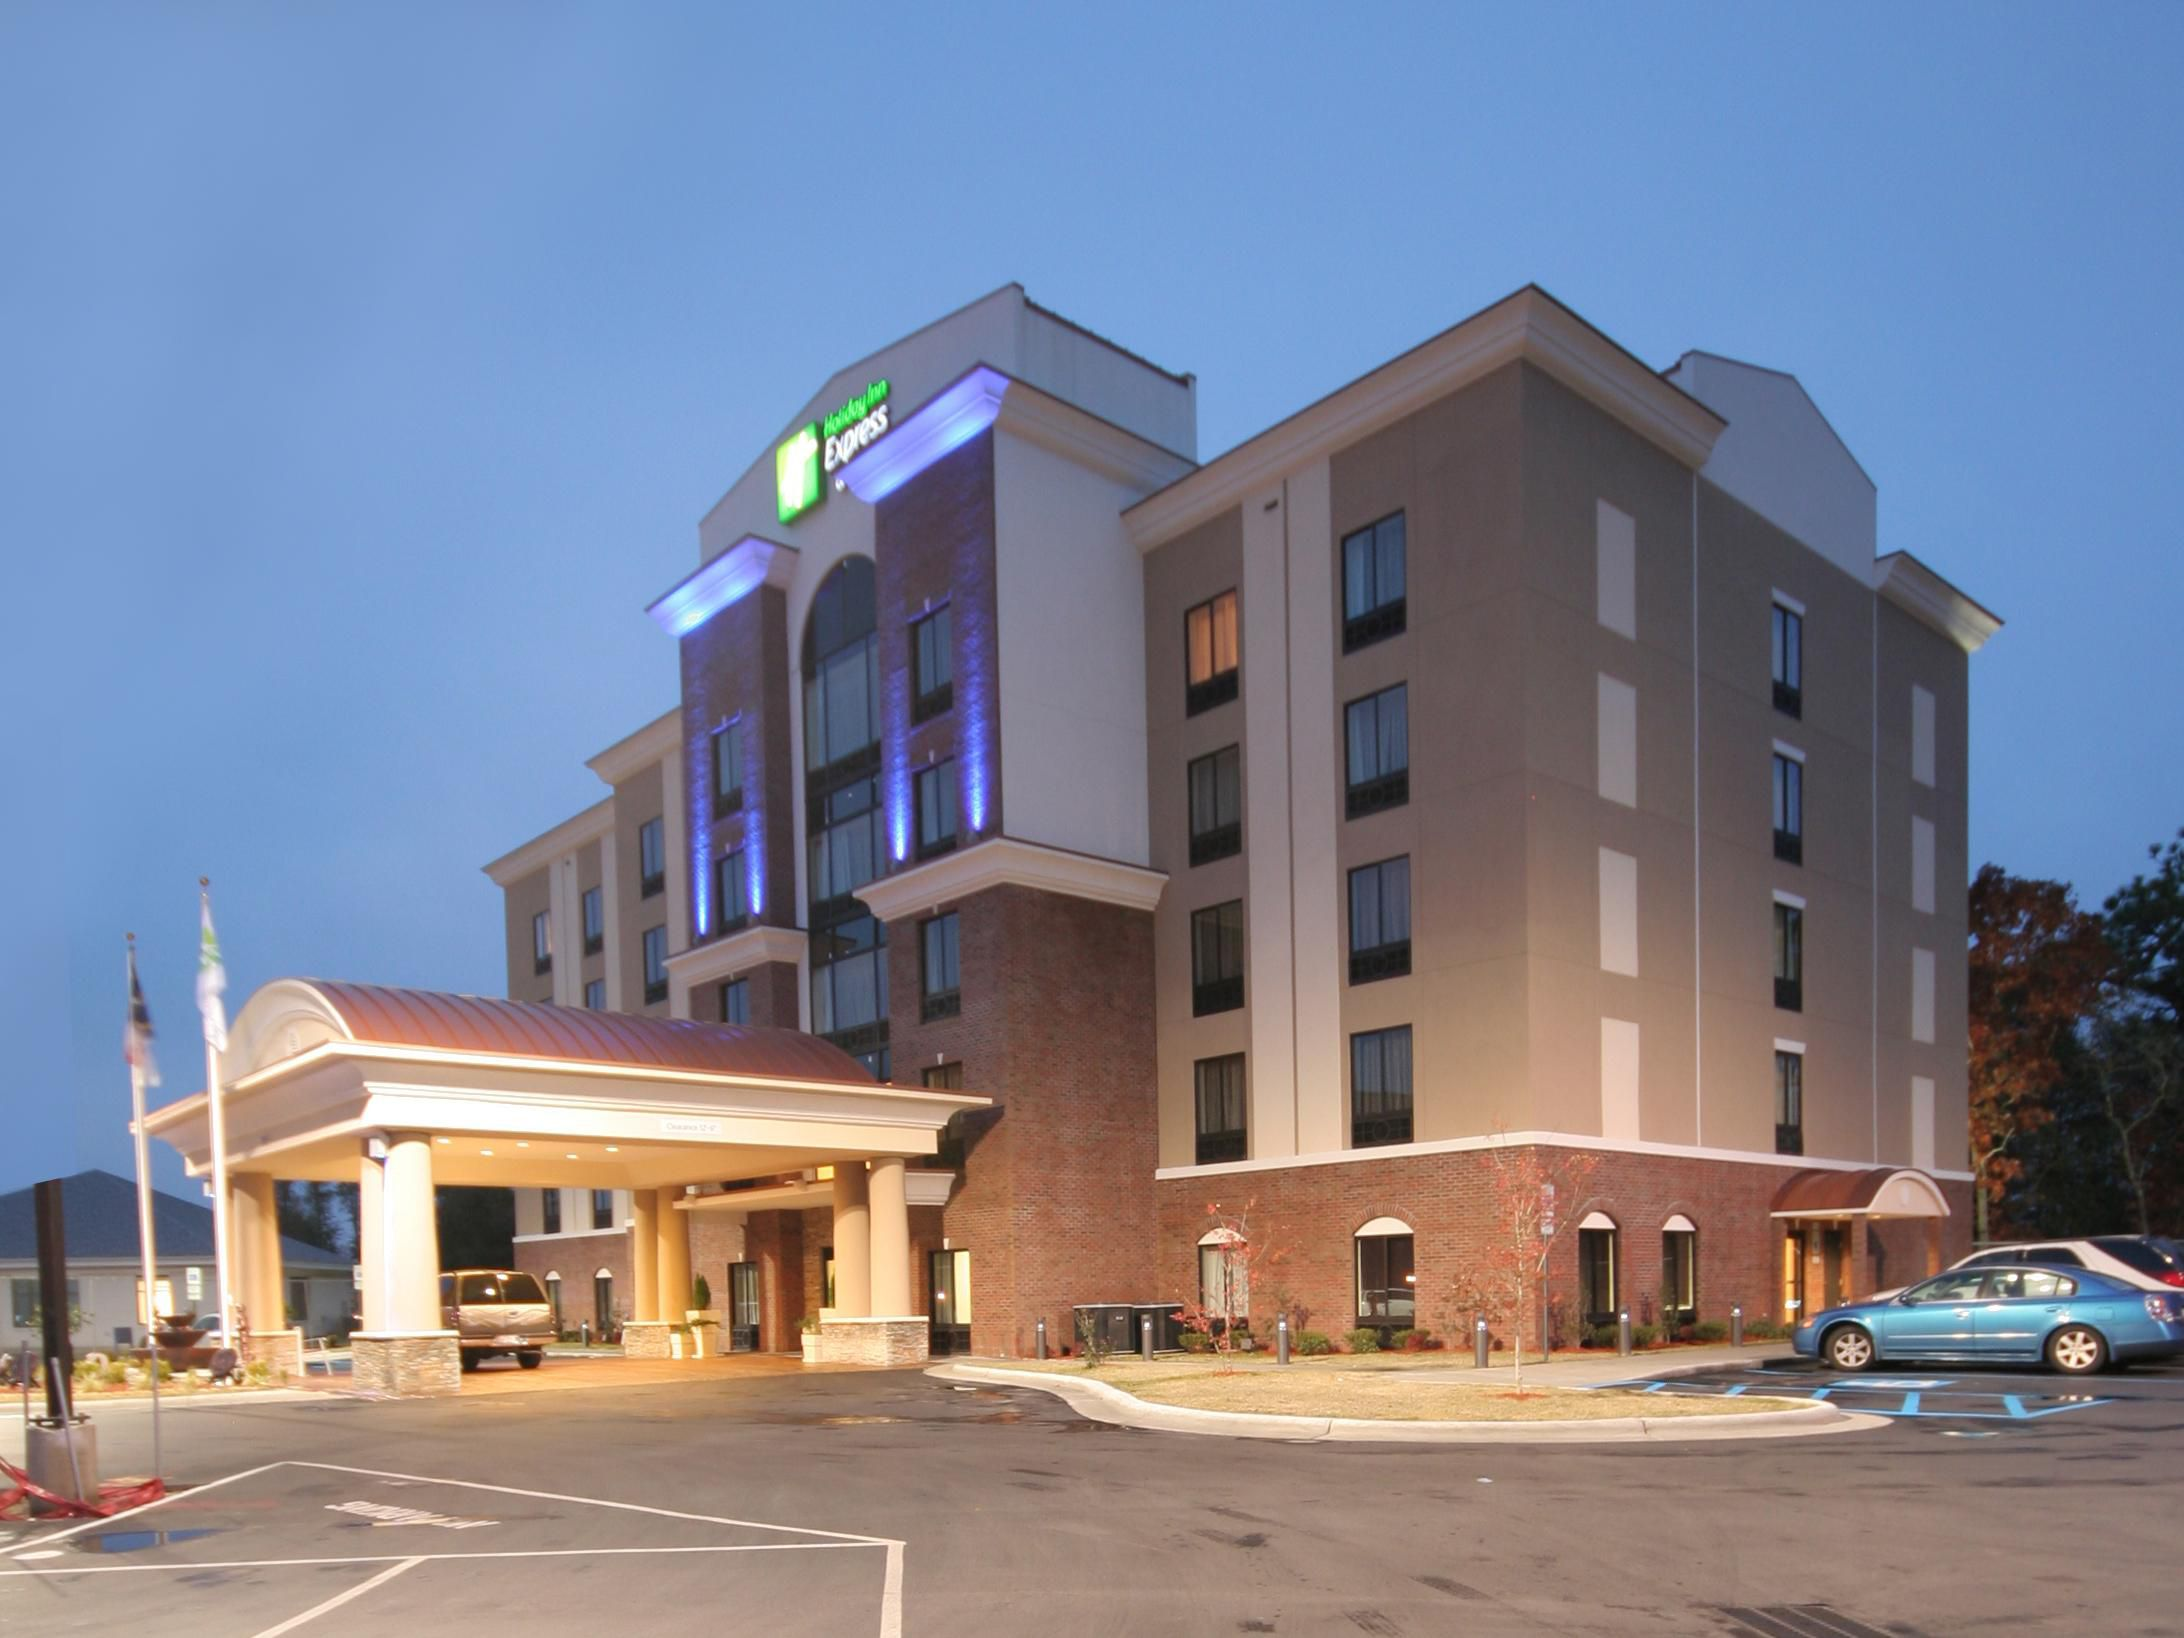 Holiday Inn Express a Fort Bragg NC Hotel